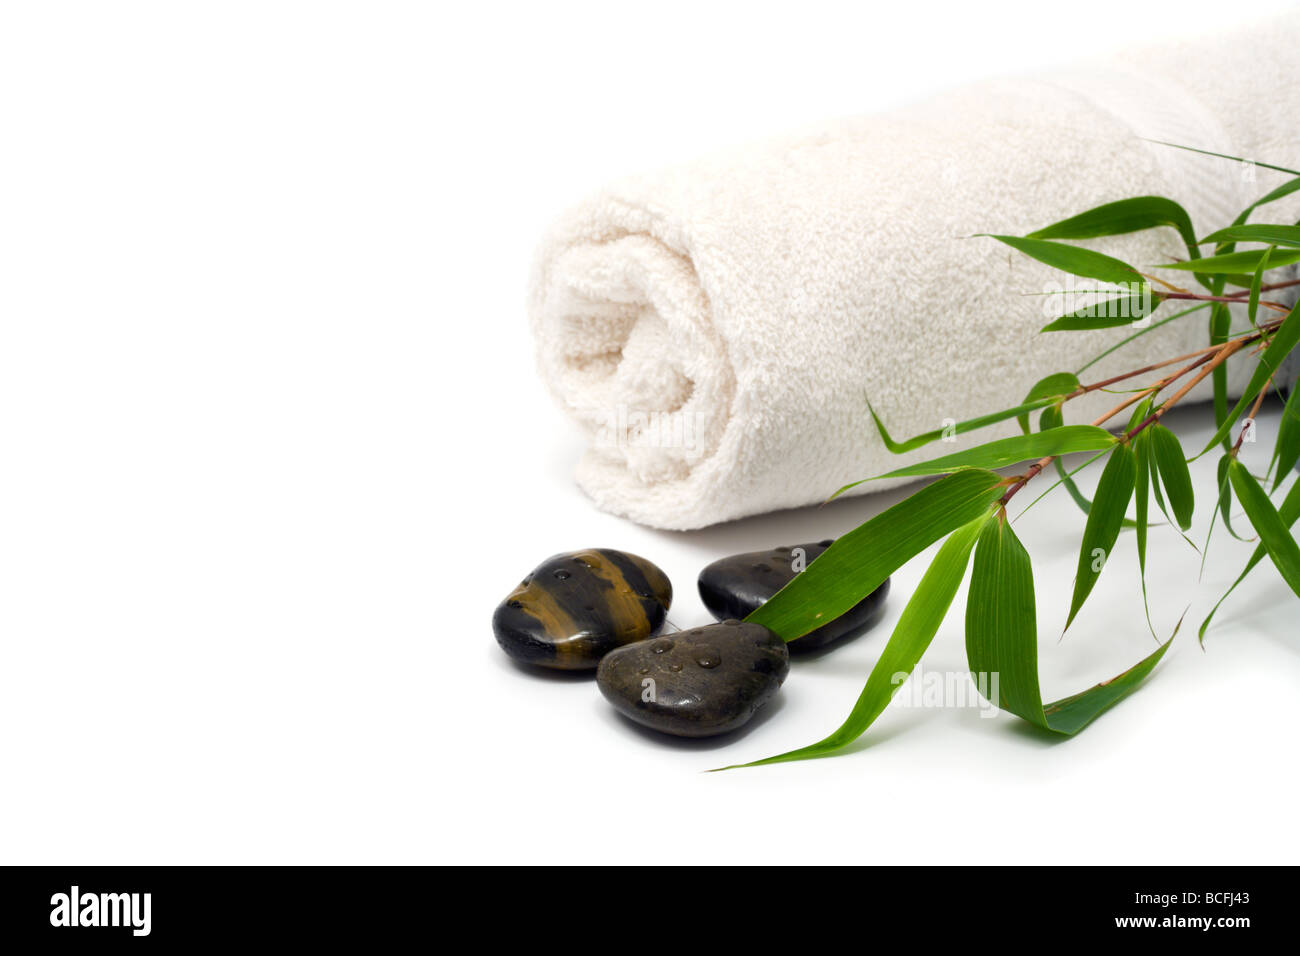 wellness and spa concept with rolled towel, pebbles, bamboo branch, cutout - Stock Image